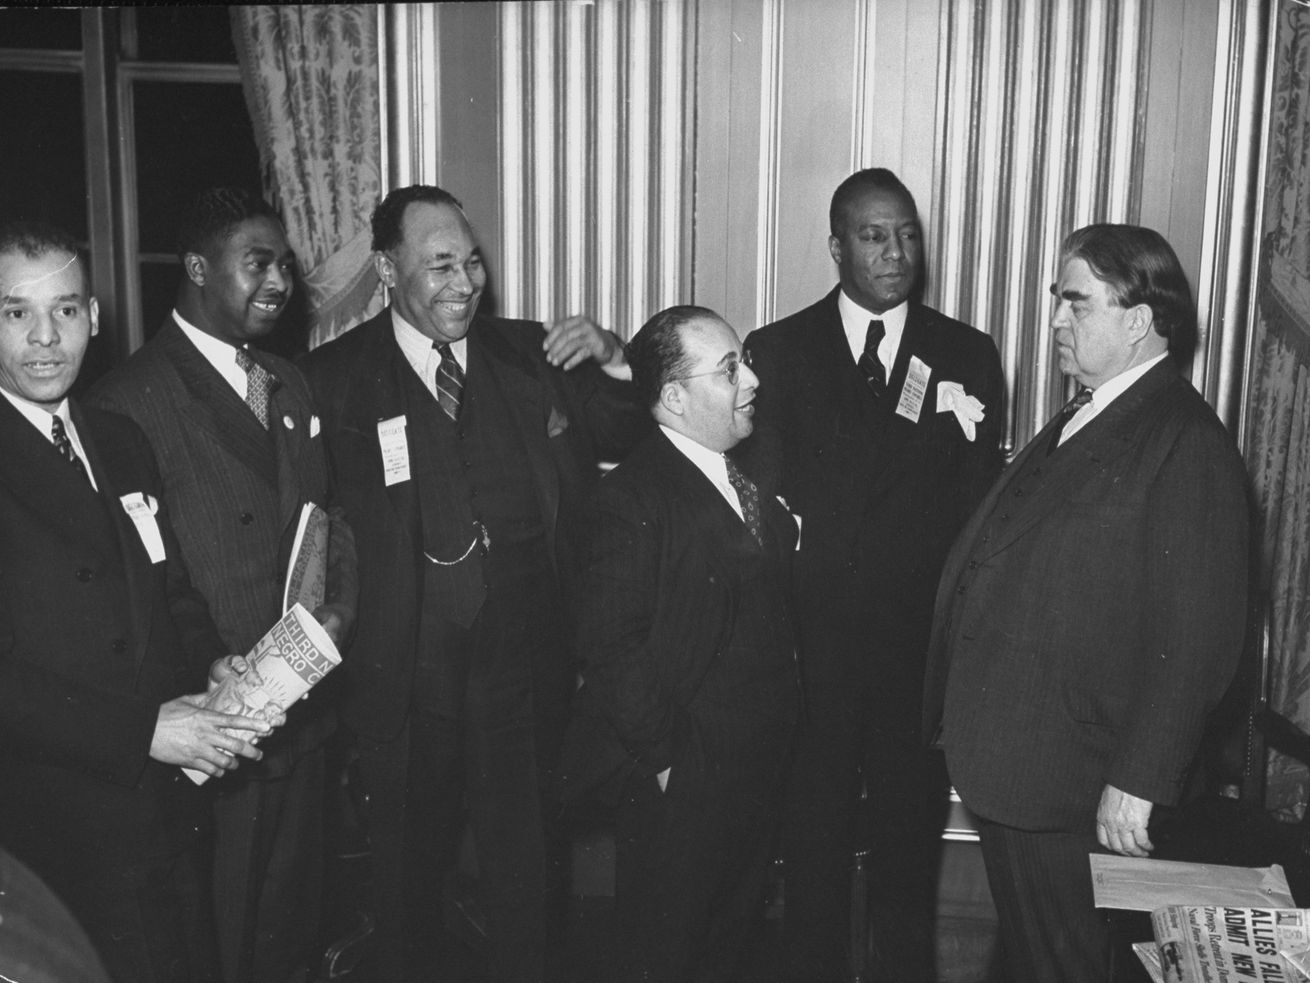 John L. Lewis (R), president of the Congress of Industrial Organizations, talking with other leaders at the National African American Congress, in January 1940.